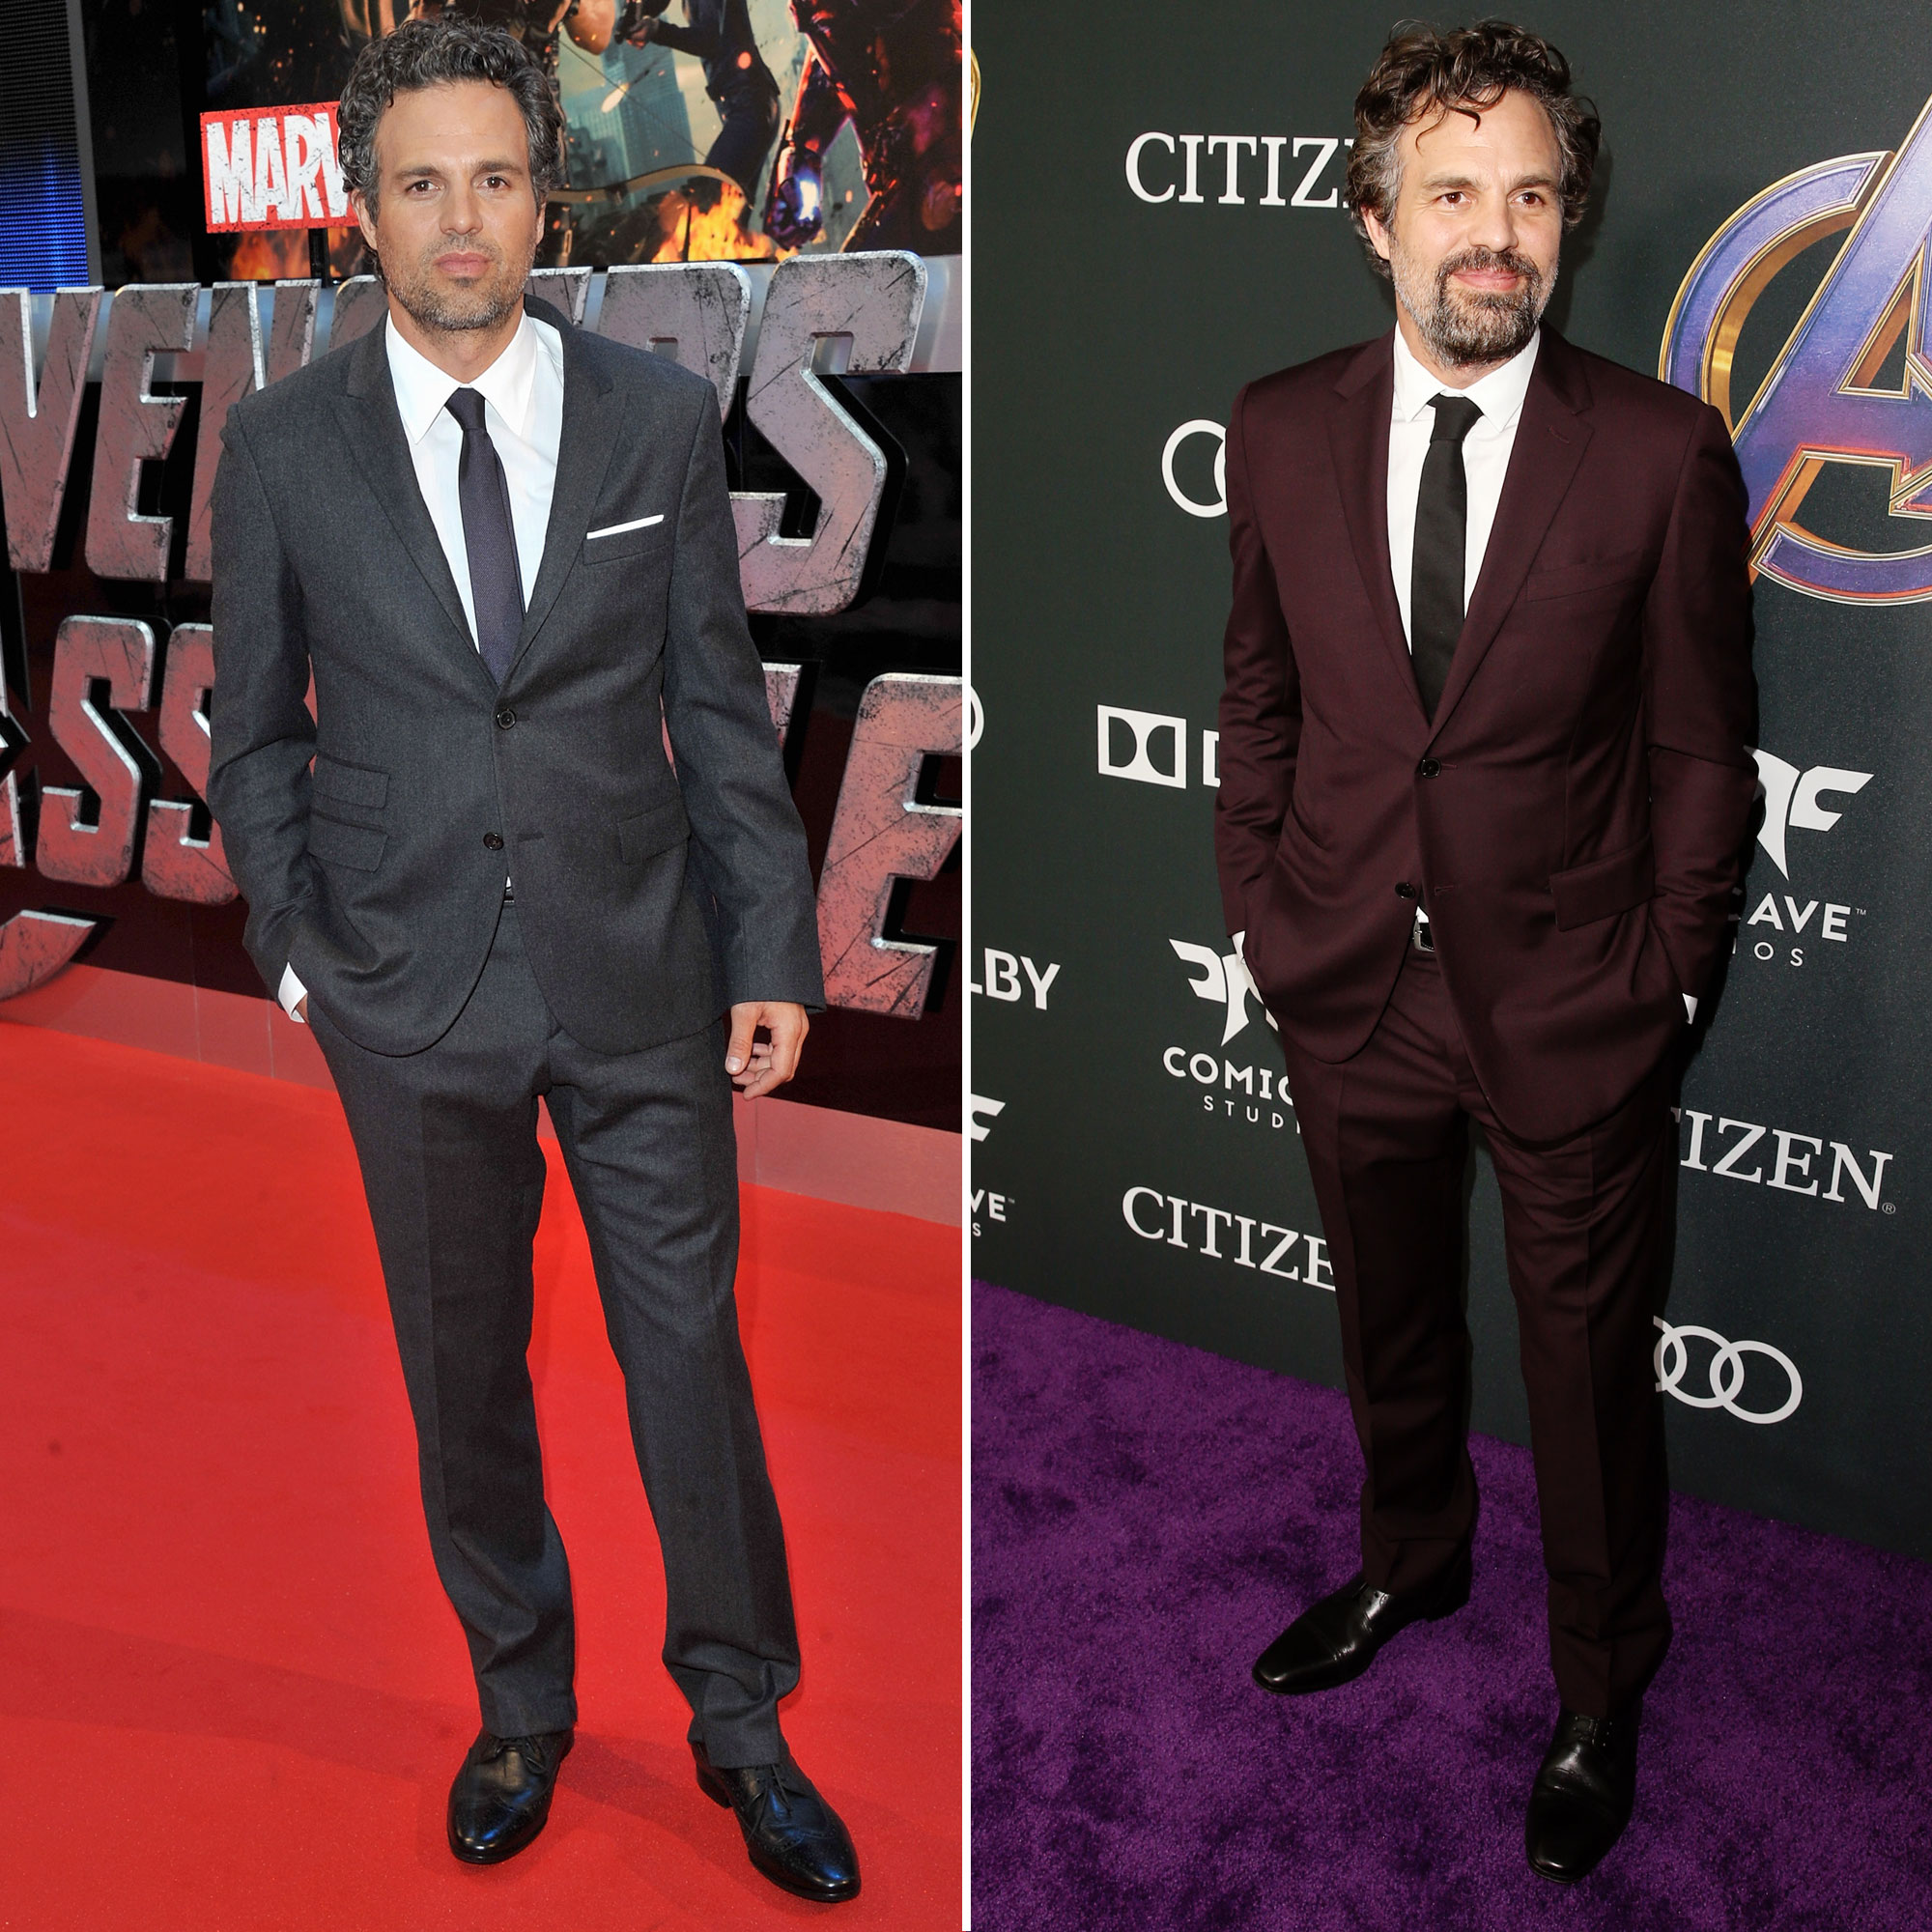 """Mark Ruffalo Avengers Premiere First Super Red Carpet to Their Last - Ruffalo shed his """"sweet guy"""" image from 13 Going on 30 as he became The Hulk in The Avengers . He also shed his clean-shaven look from the 2012 premiere in London, adding some scruff and a little color to his outfit."""